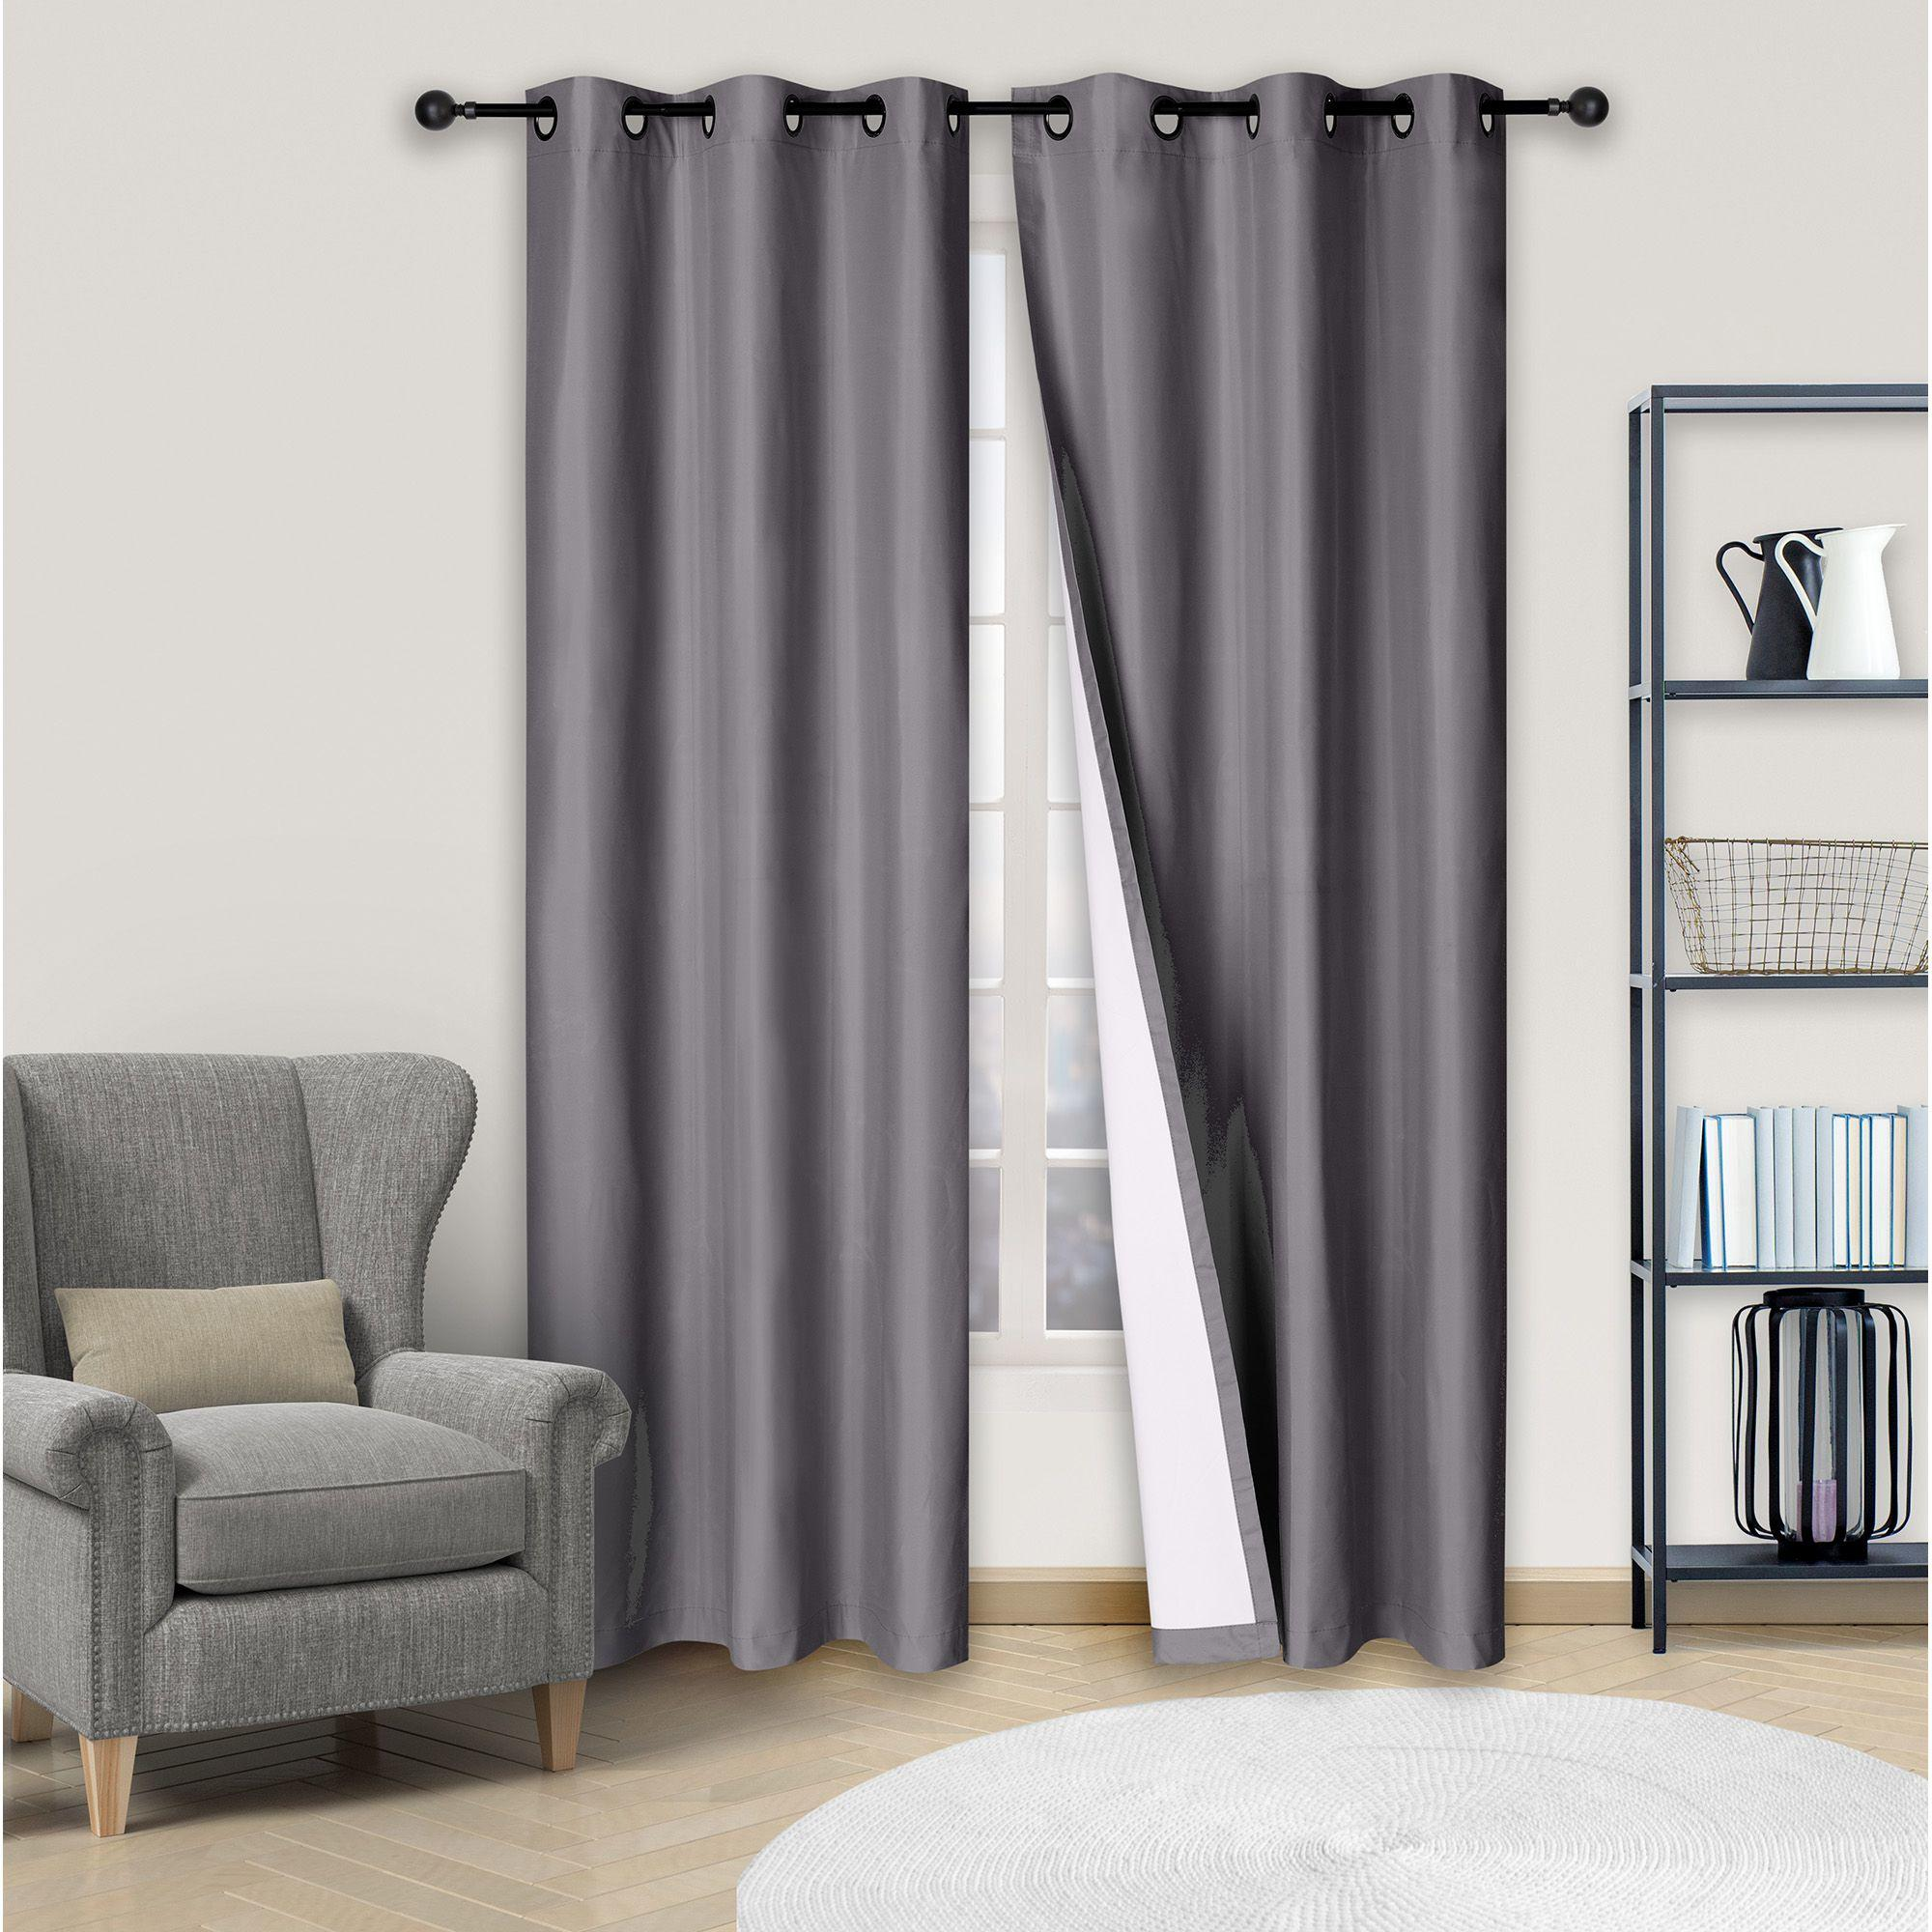 60eac safdie co lvth 51325zec2z01 white curtains woven jacquard curtain w tpu panel 84l ultimate blackout all